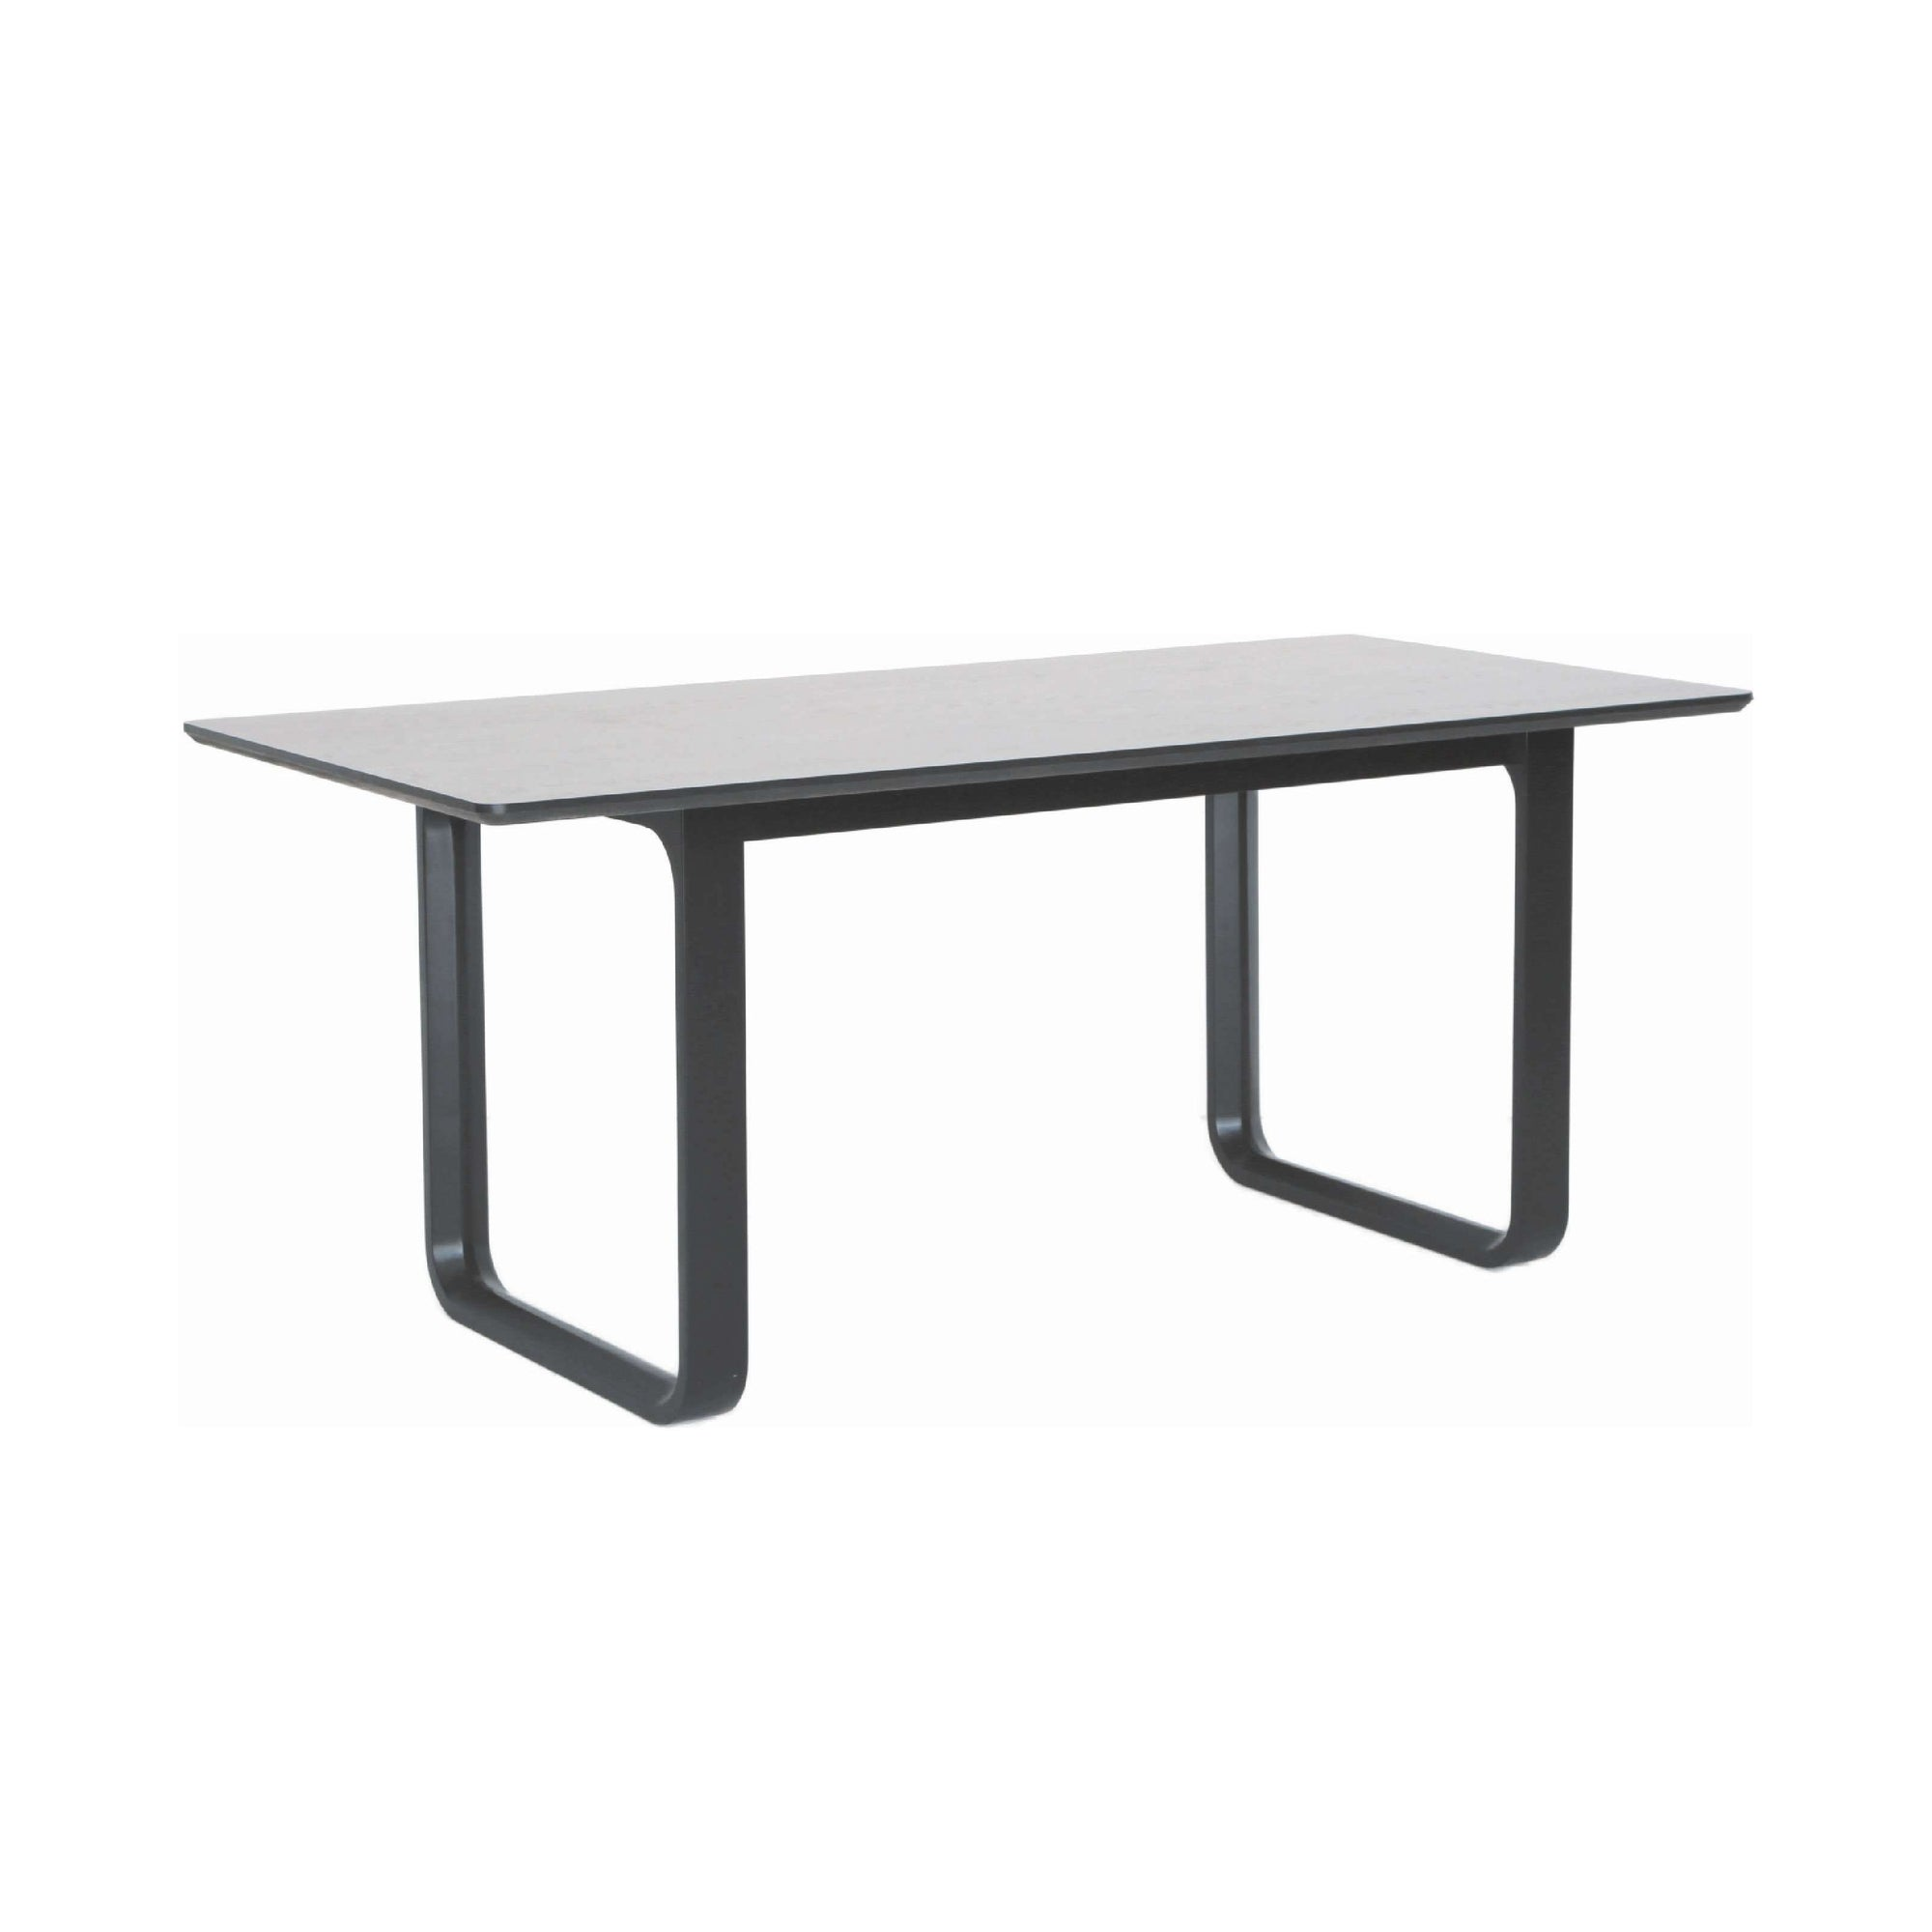 ULMER 1.8m Dining Table in Black Colour Leg, White Grey Laminate Top